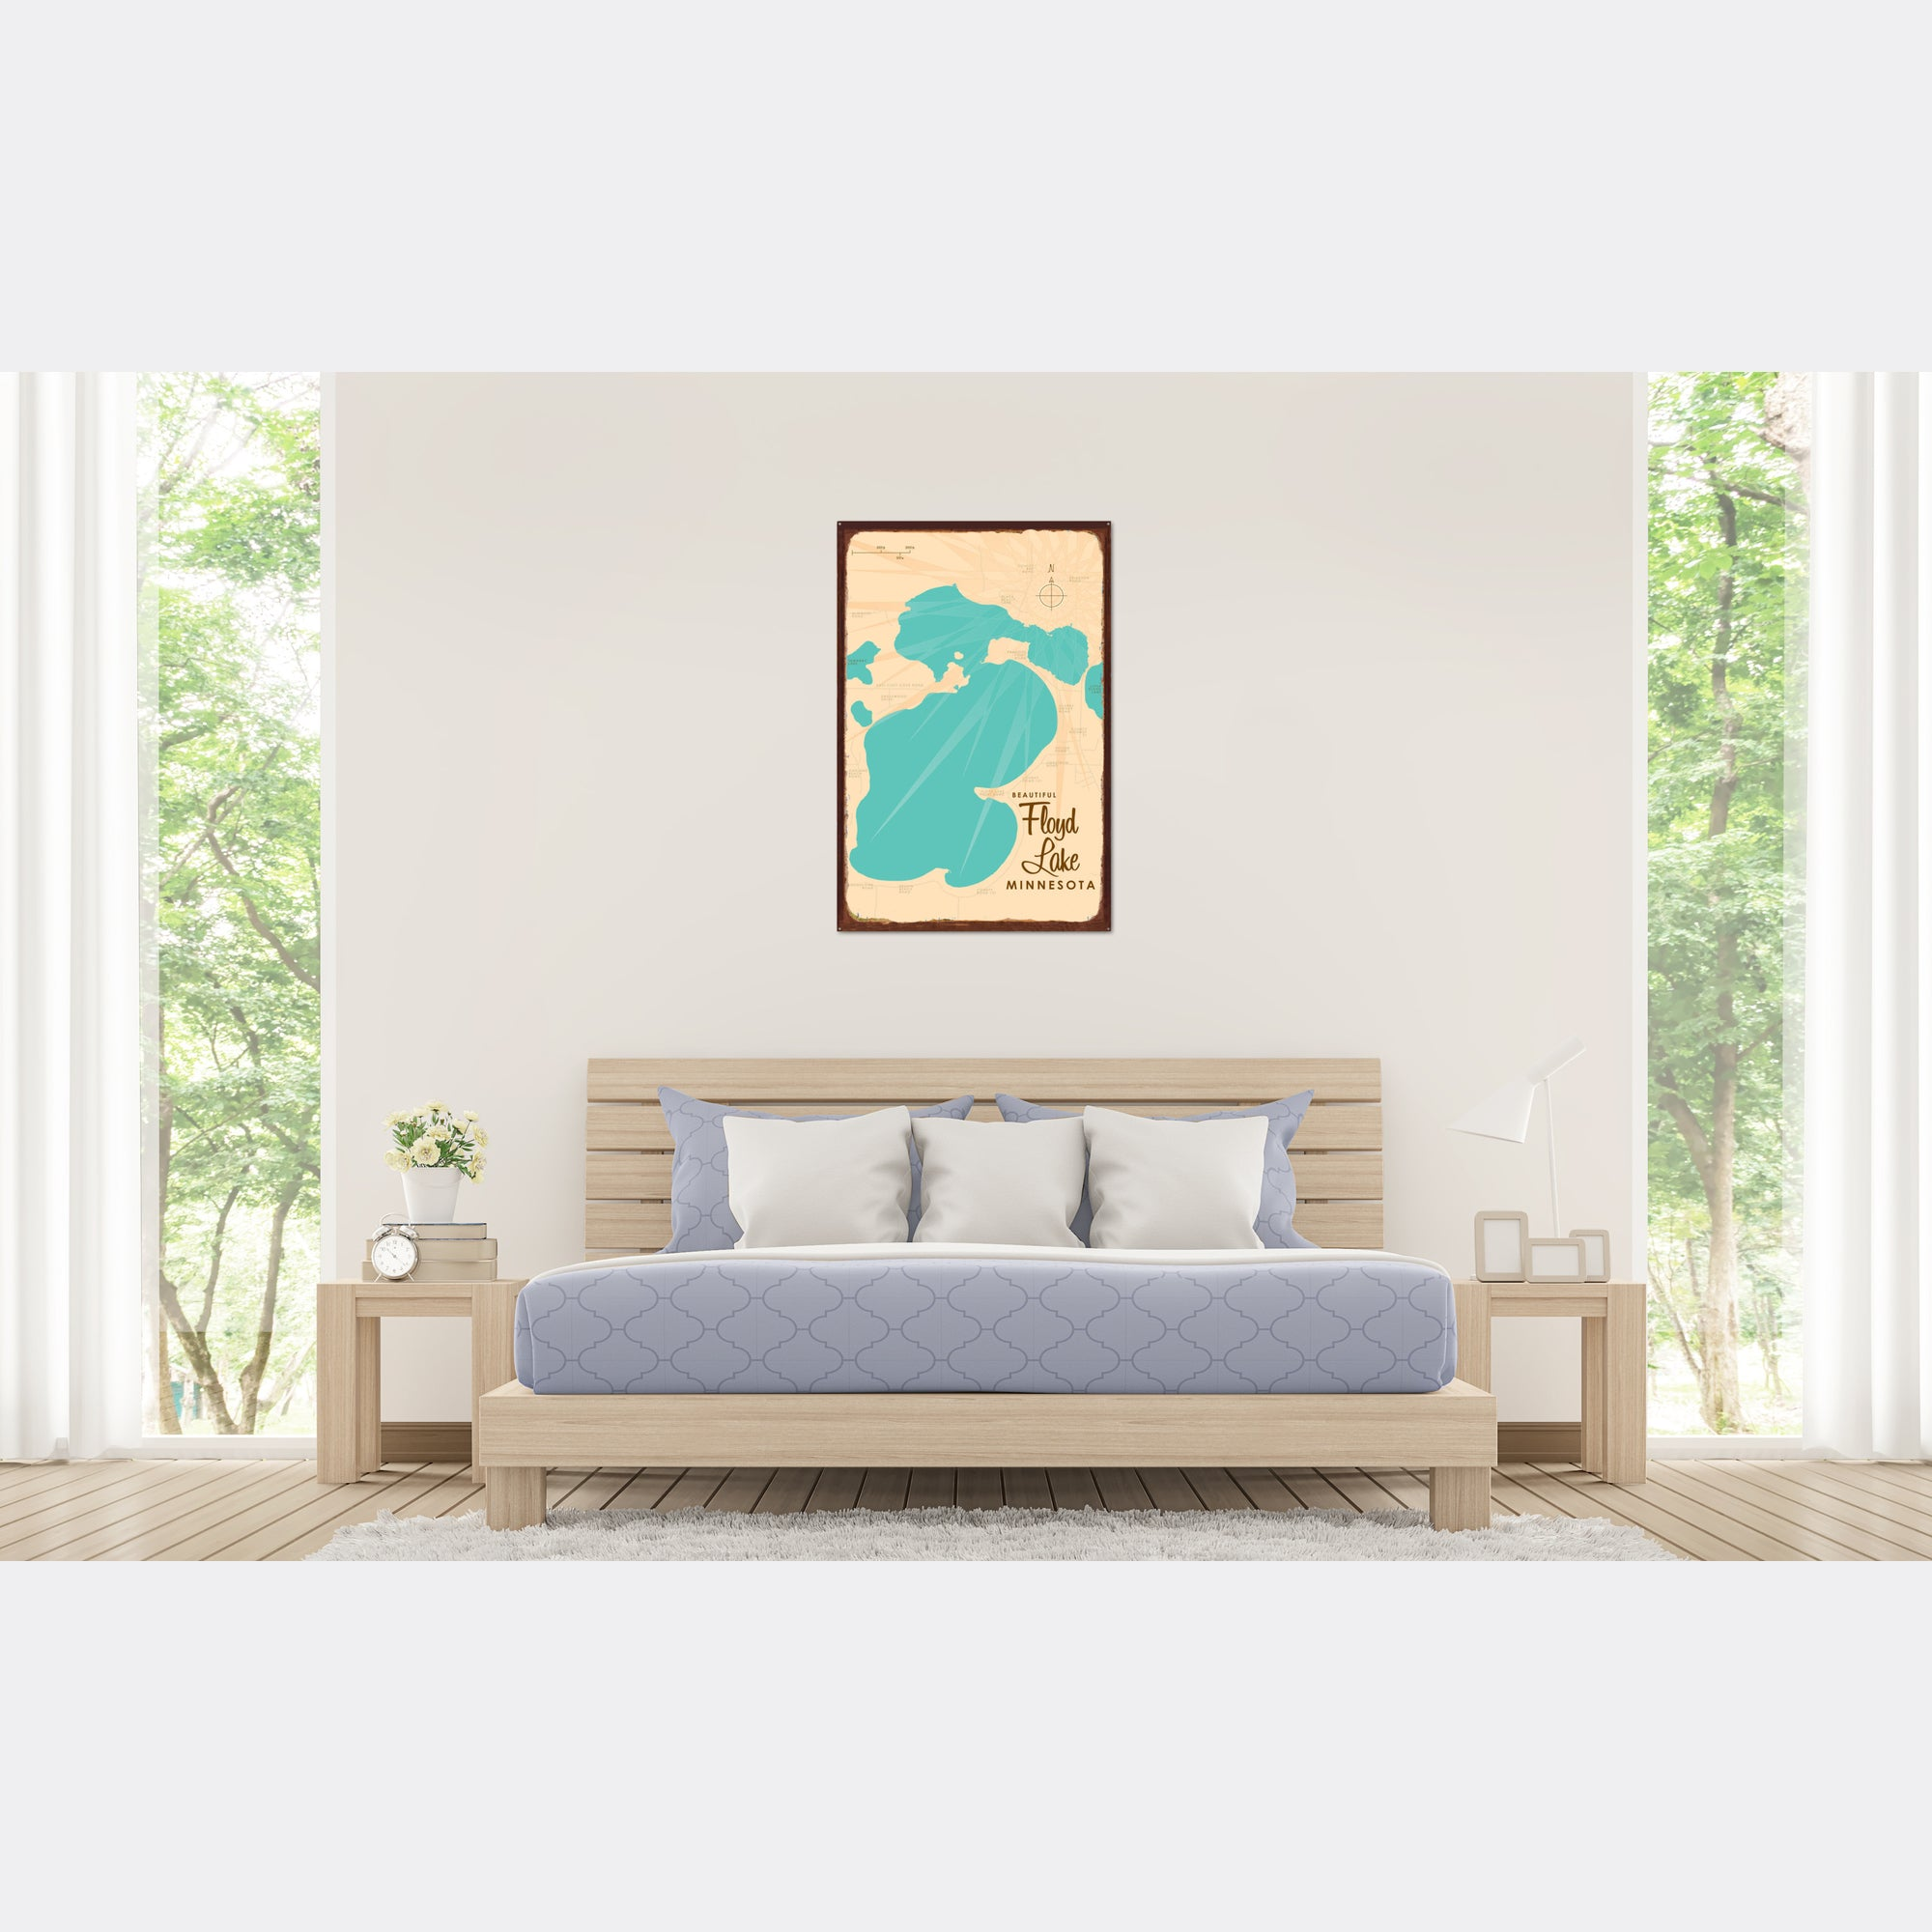 Floyd Lake, Rustic Metal Sign Map Art